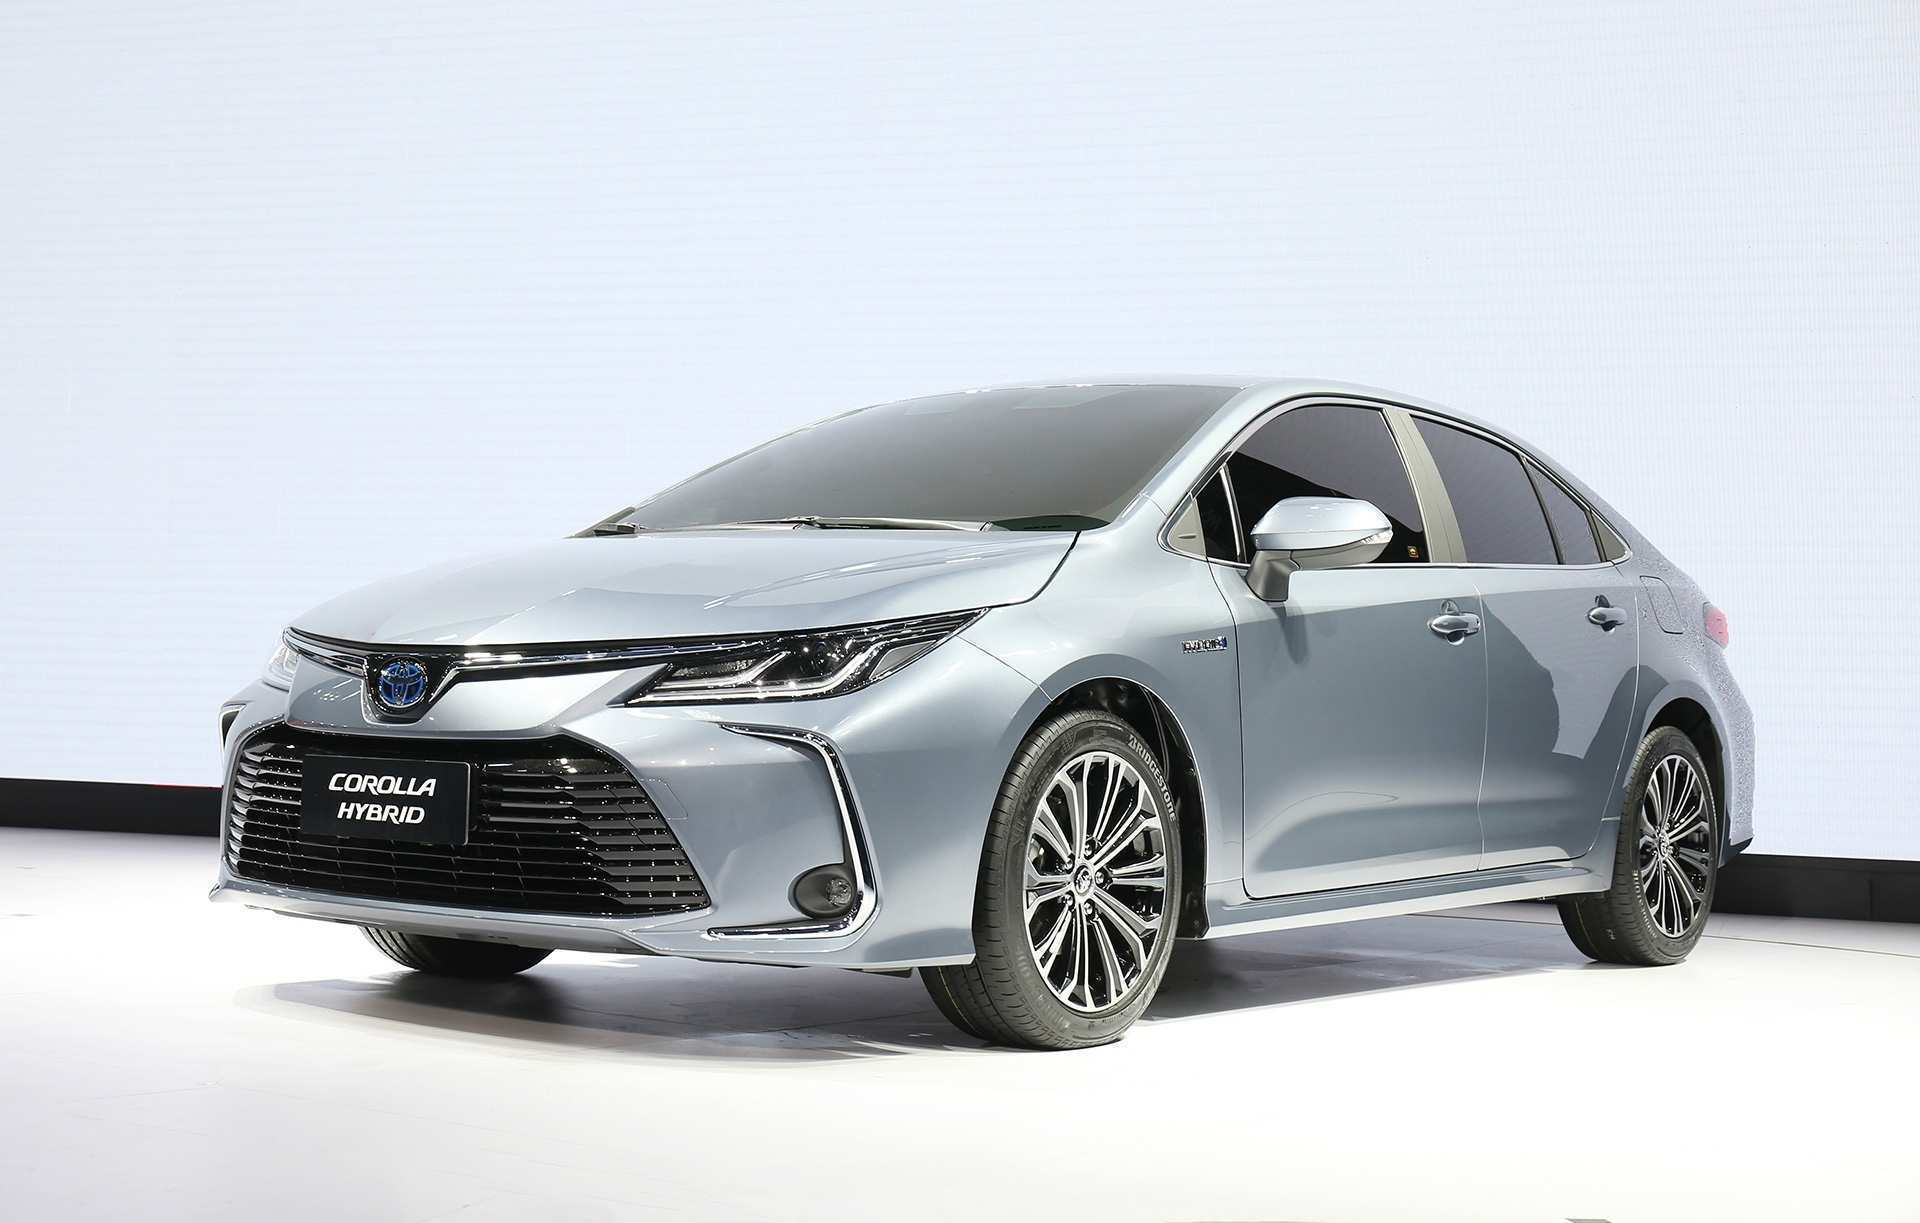 23 Gallery of Toyota Ist 2020 Price with Toyota Ist 2020